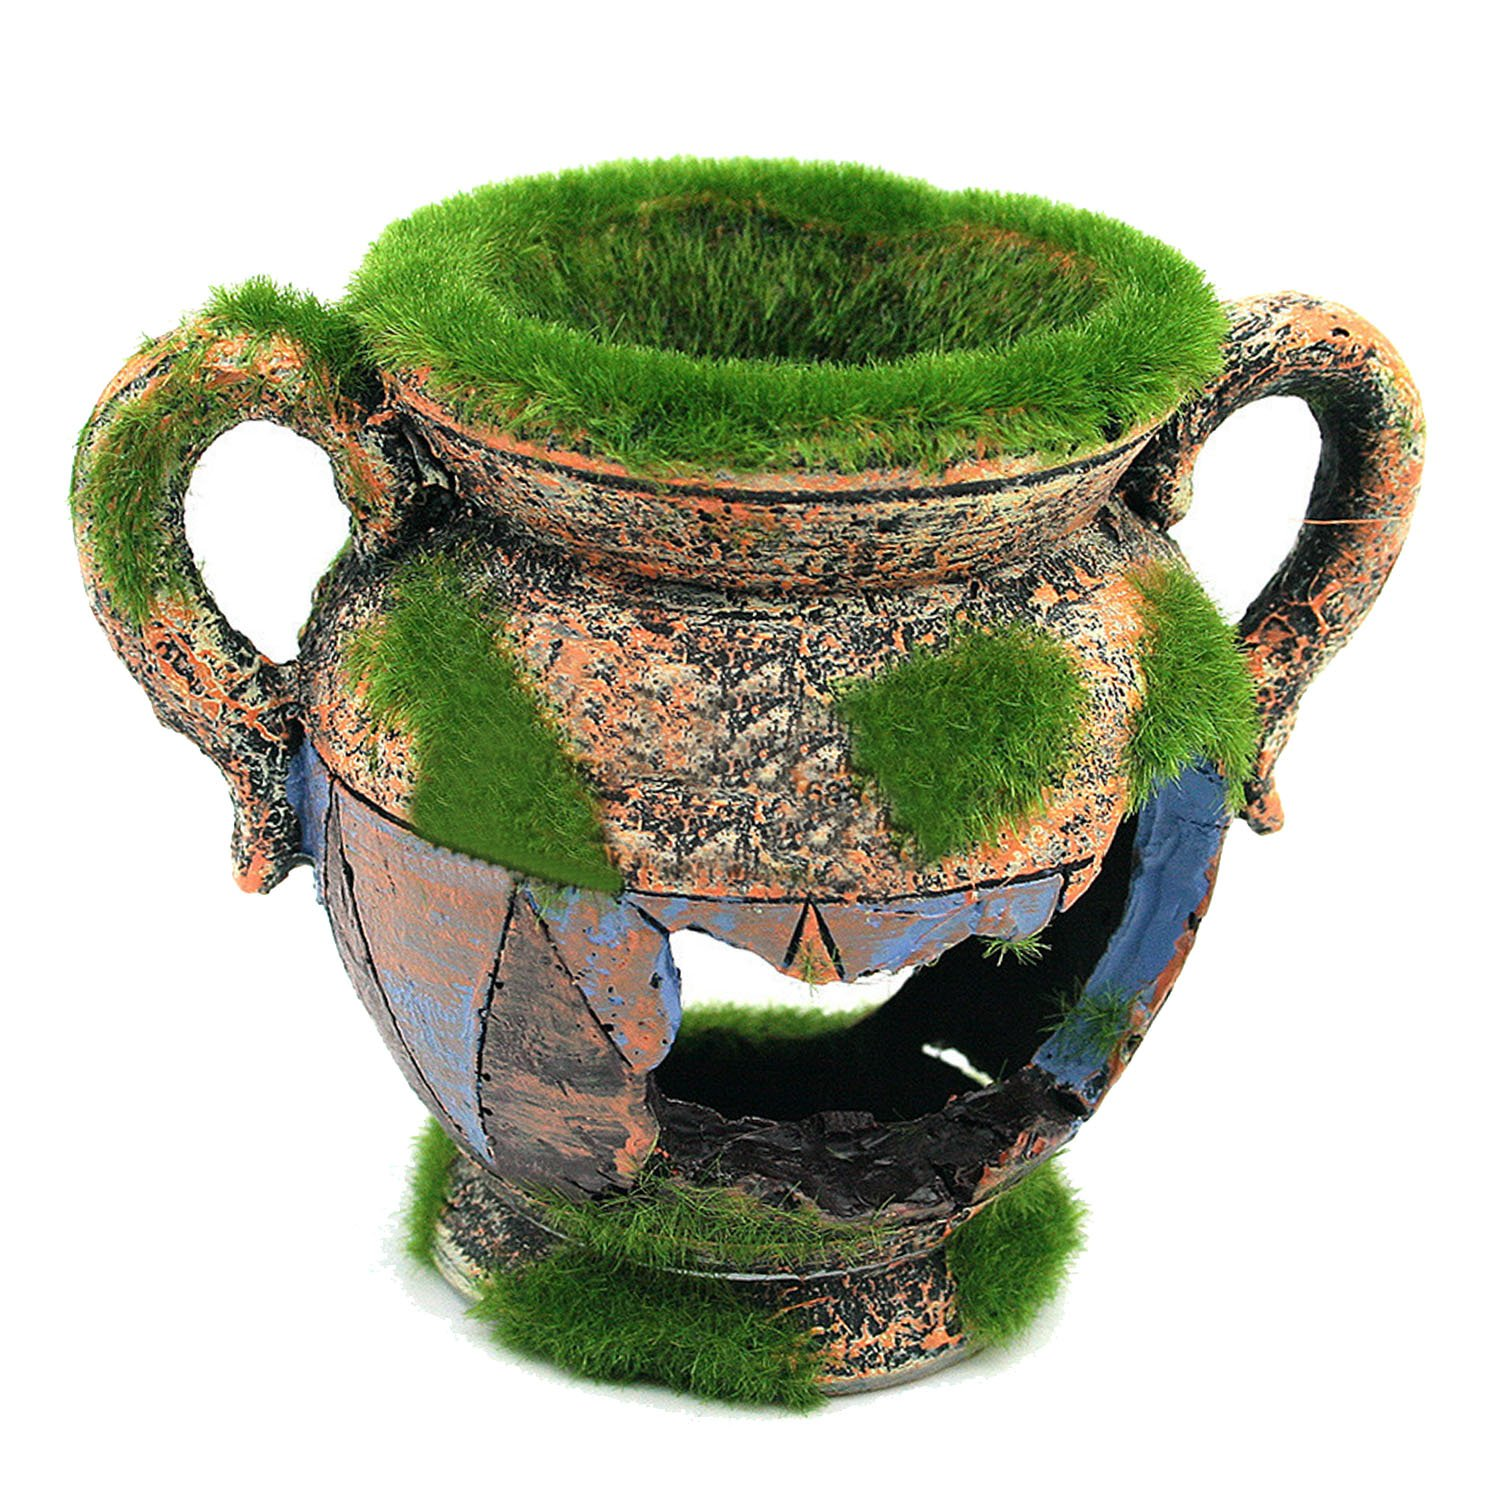 Beetest-Simulation Moss Vase Fish Shelter Cave Aquarium Fish Tank Landscape Ornament Decoration